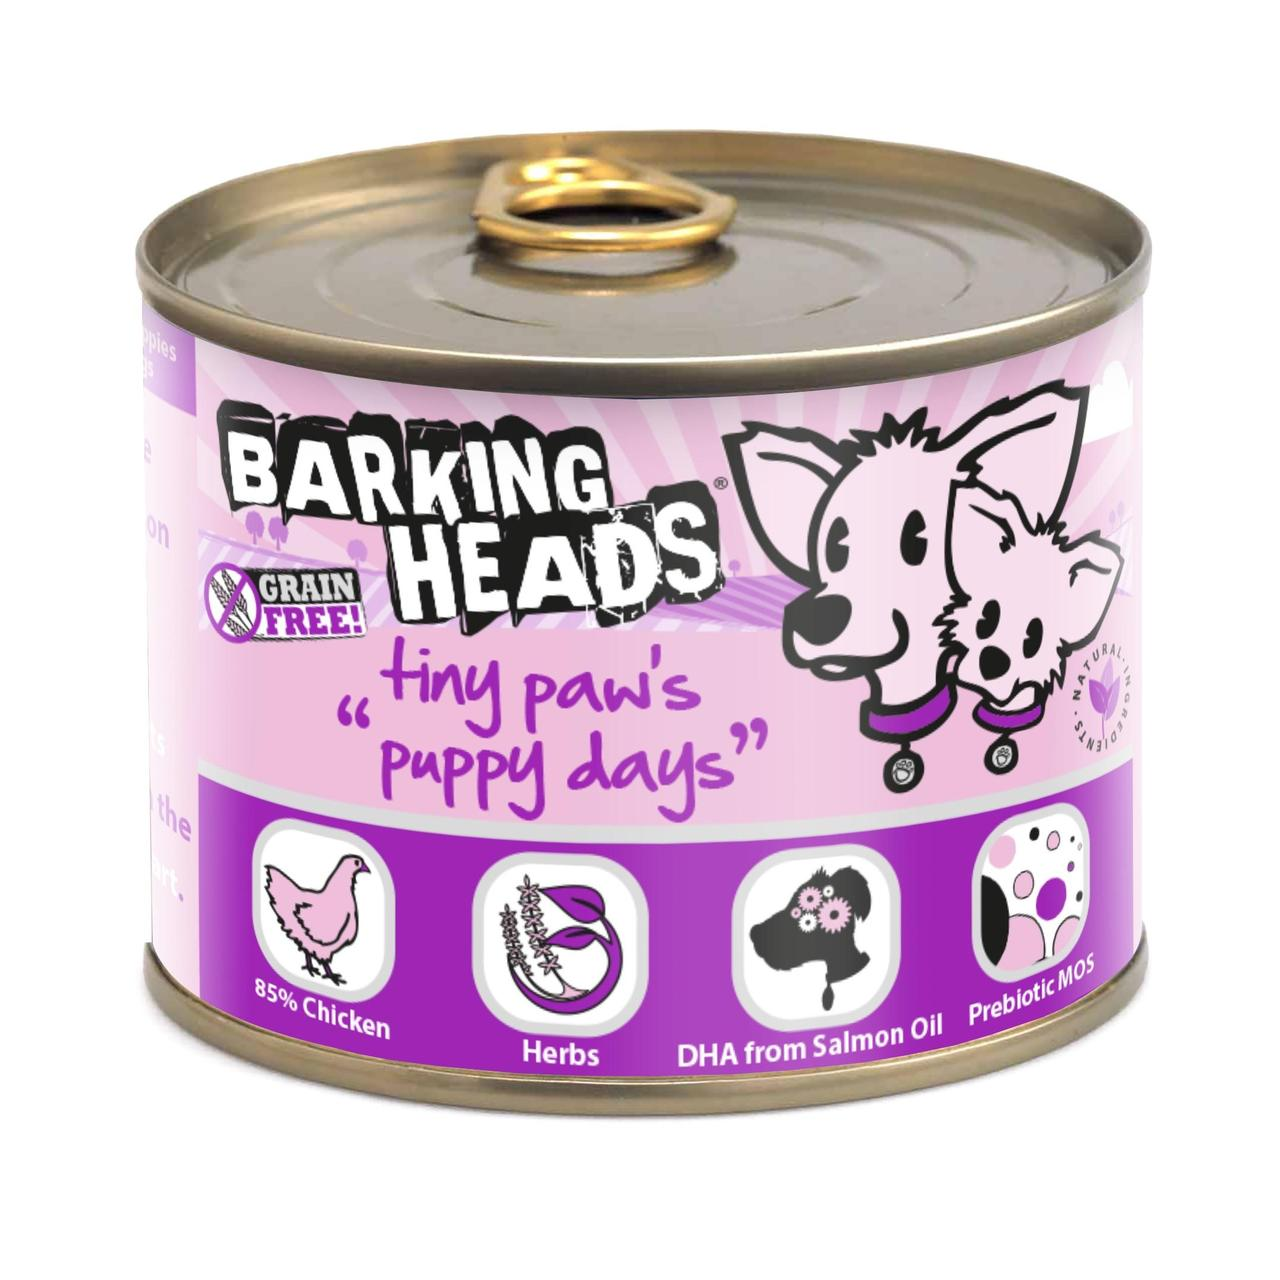 An image of Barking Heads Tiny Paws Puppy Days